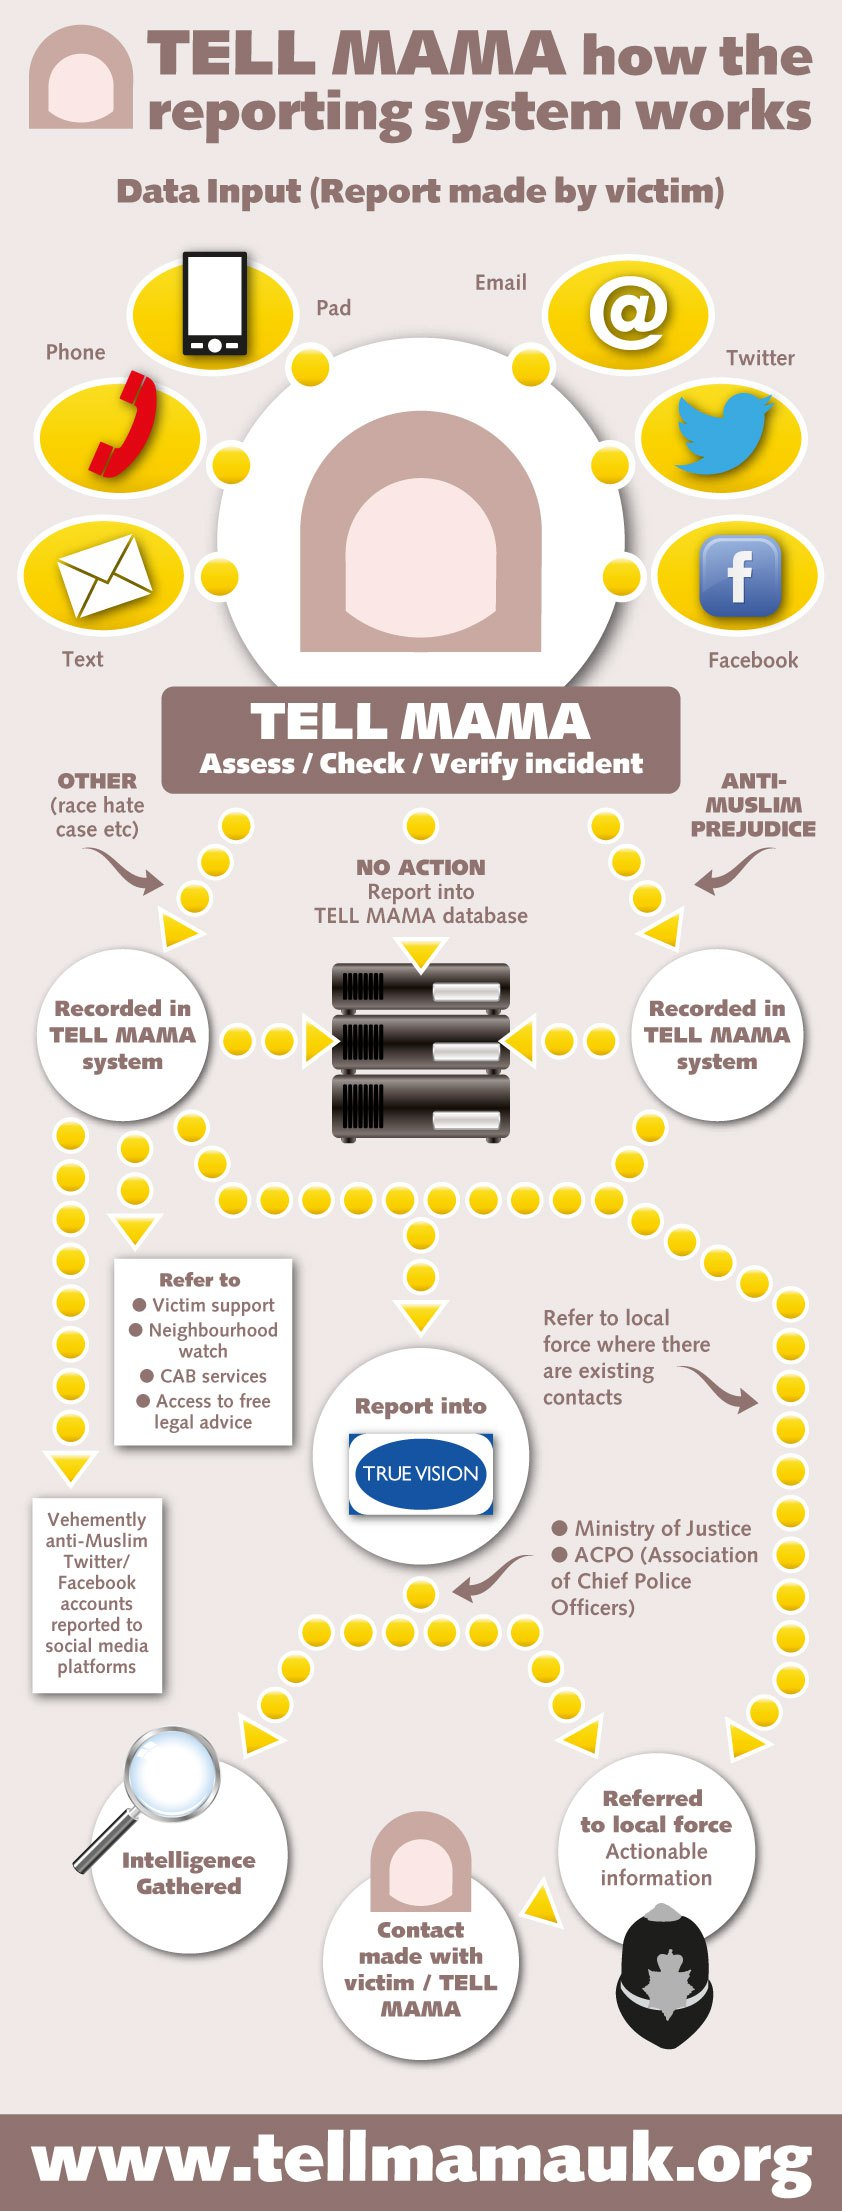 Tell MAMA – How the reporting system works